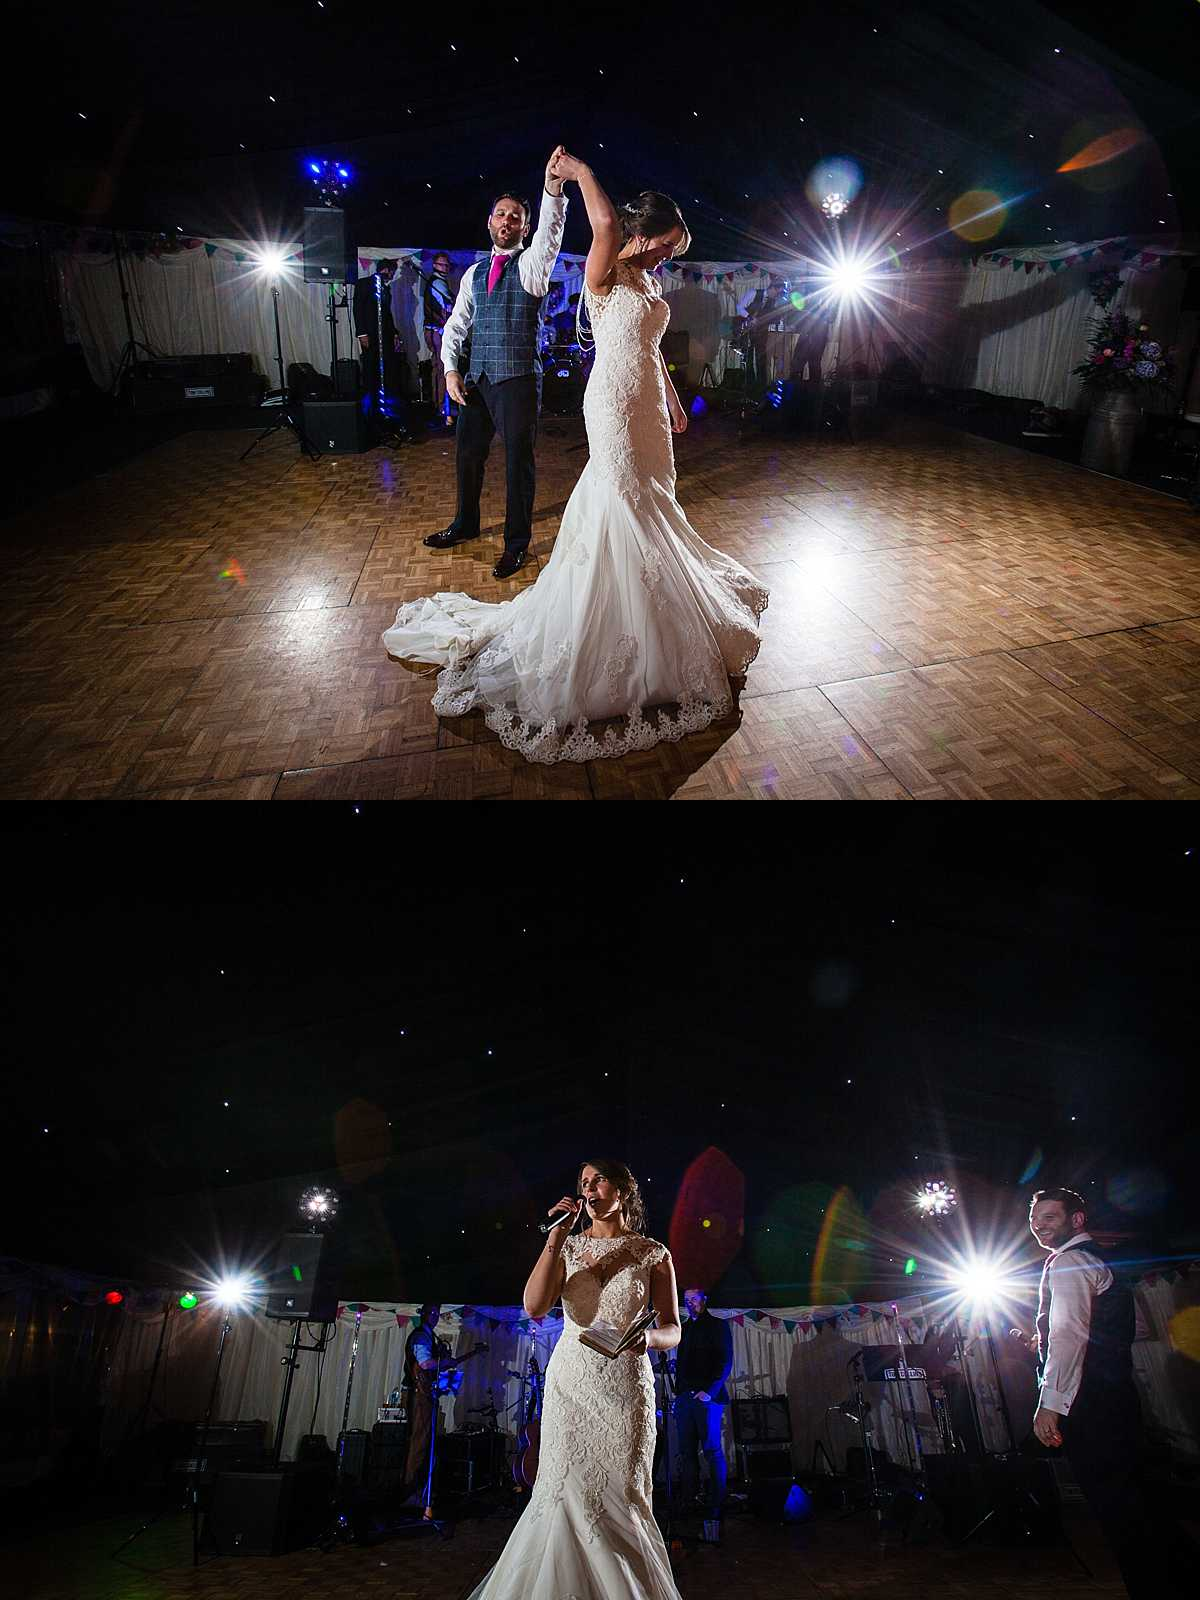 bride and groom turning around and signing during their first dance at their marquee wedding in wales